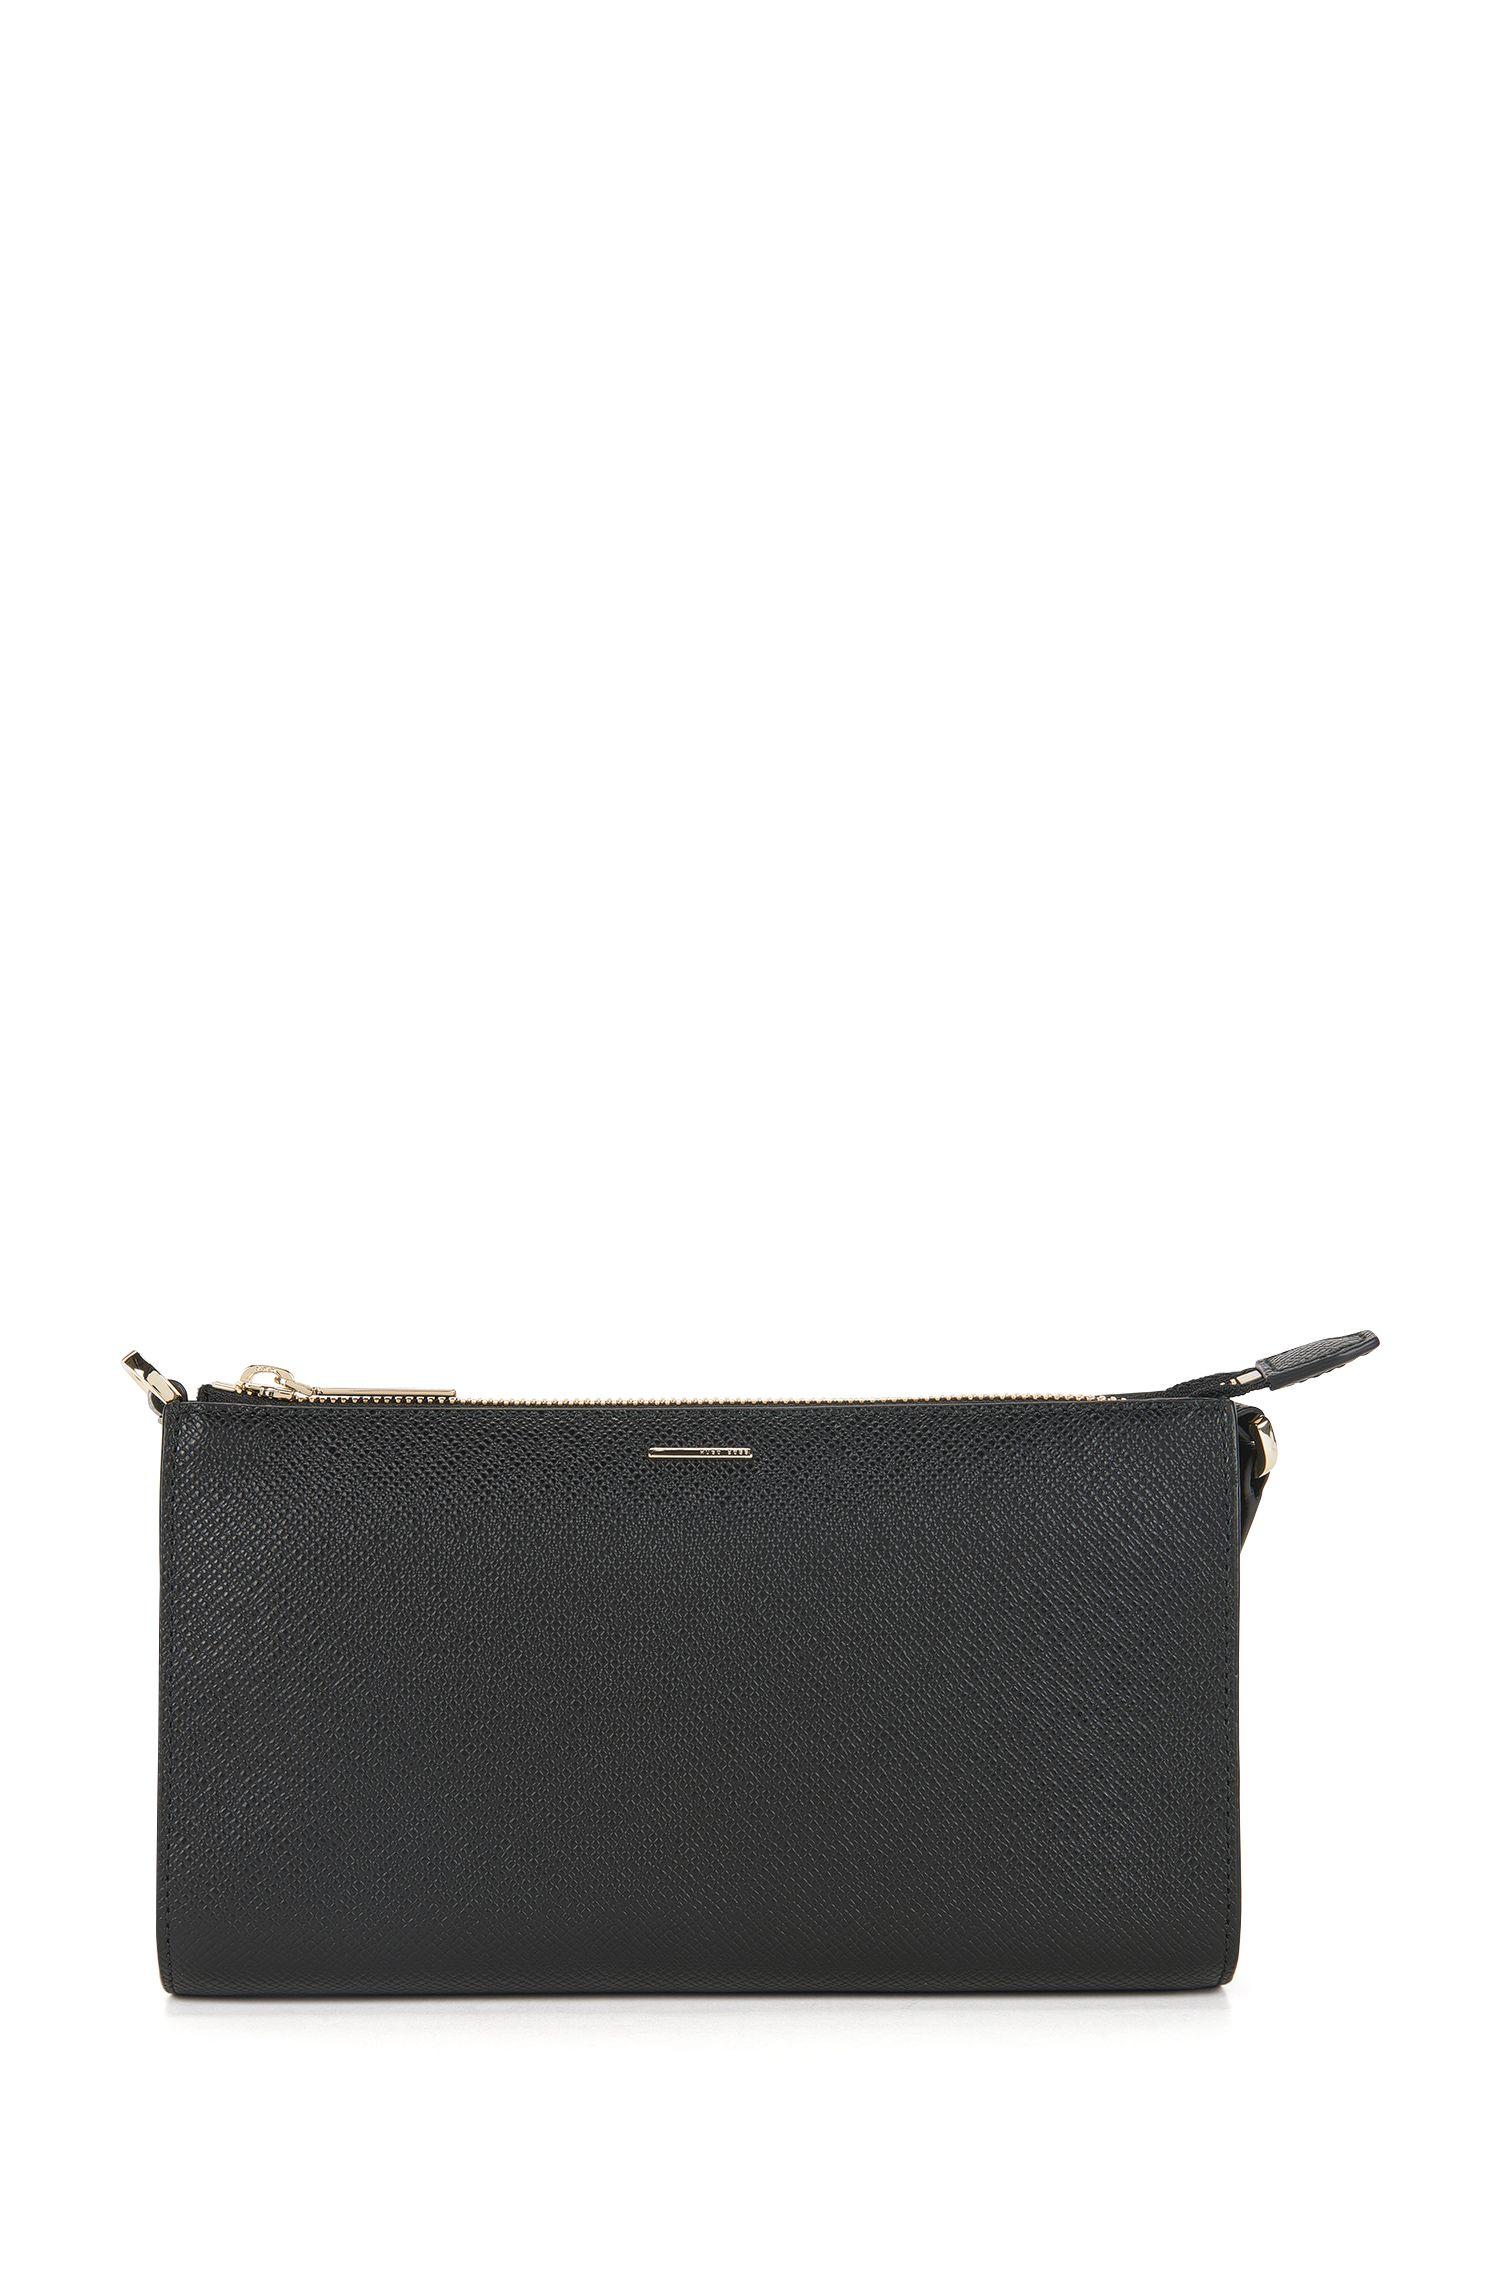 Clutch van leer uit de Luxury Staple-collectie van BOSS